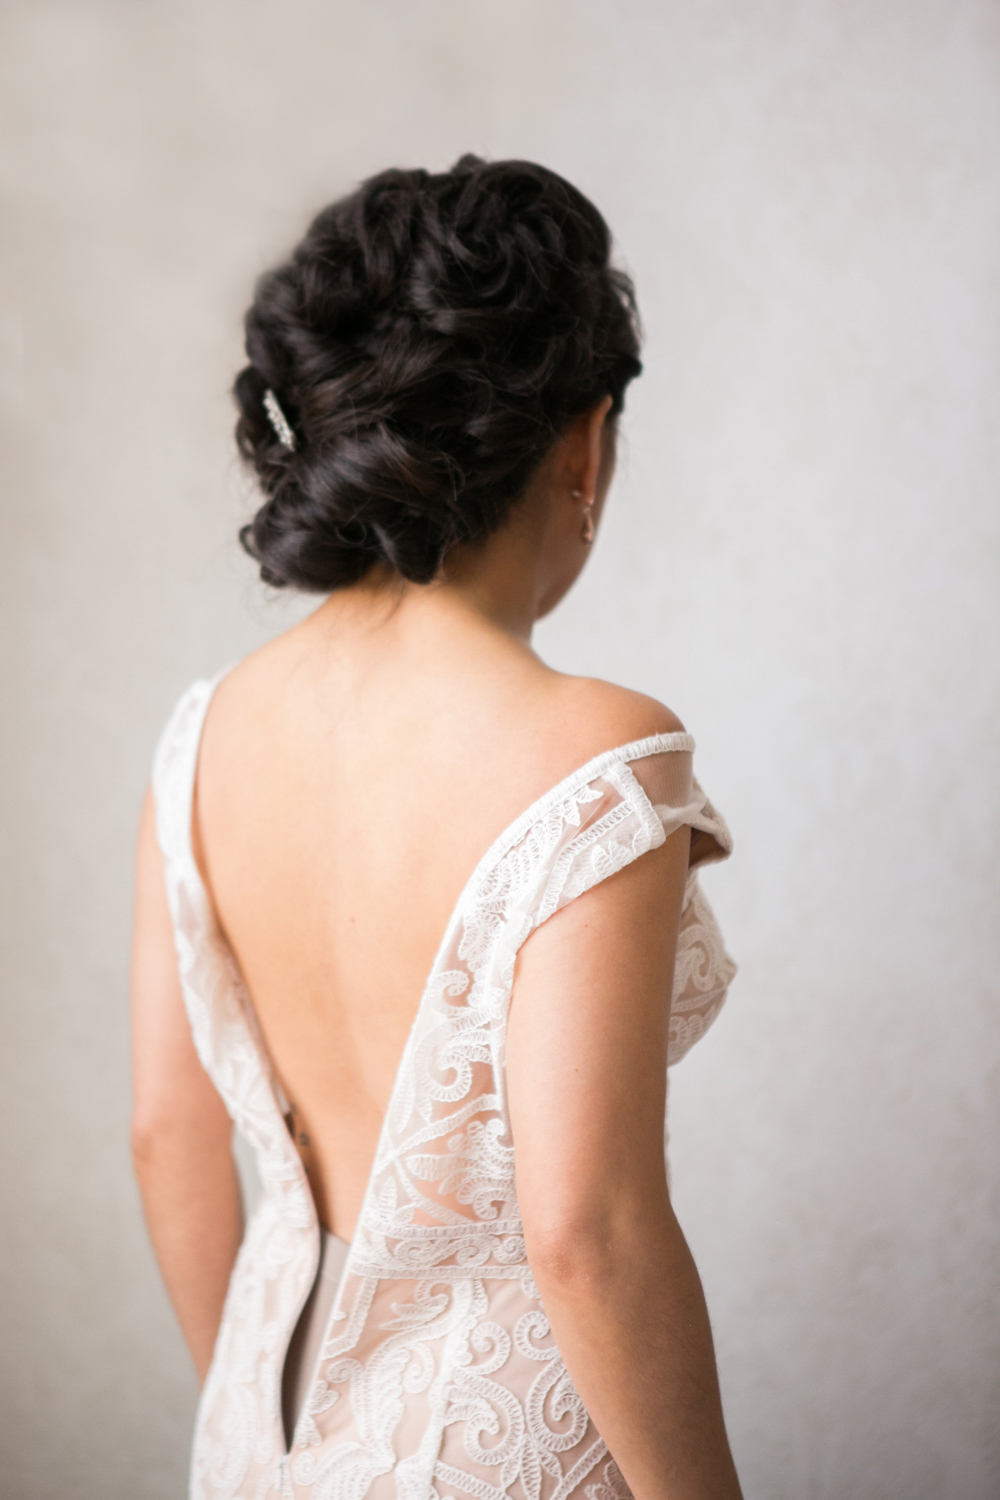 Lesbian Black tie wedding in New York City; here Kat puts on her BHLDN gown.